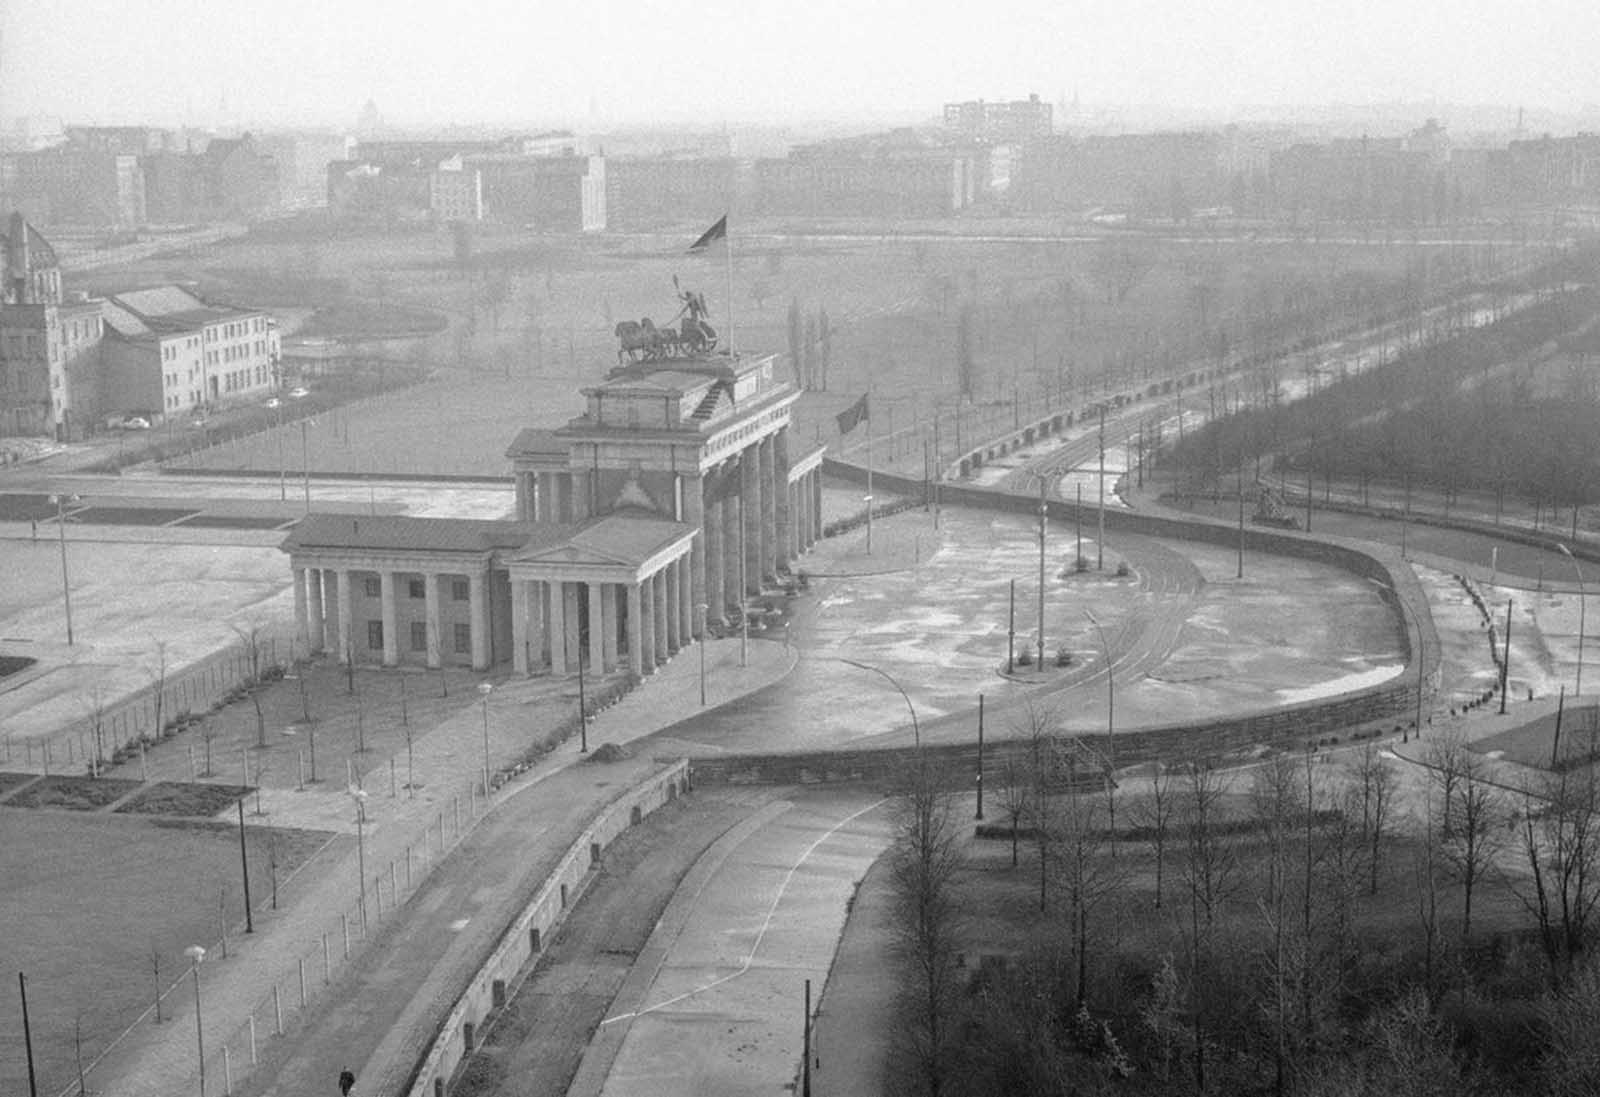 View from top of the old Reichstag building of the Brandenburg Gate, which marks the border in this divided city. The semi-circled wall around the Brandenburg Gate was erected by East German Vopos on November 19, 1961.